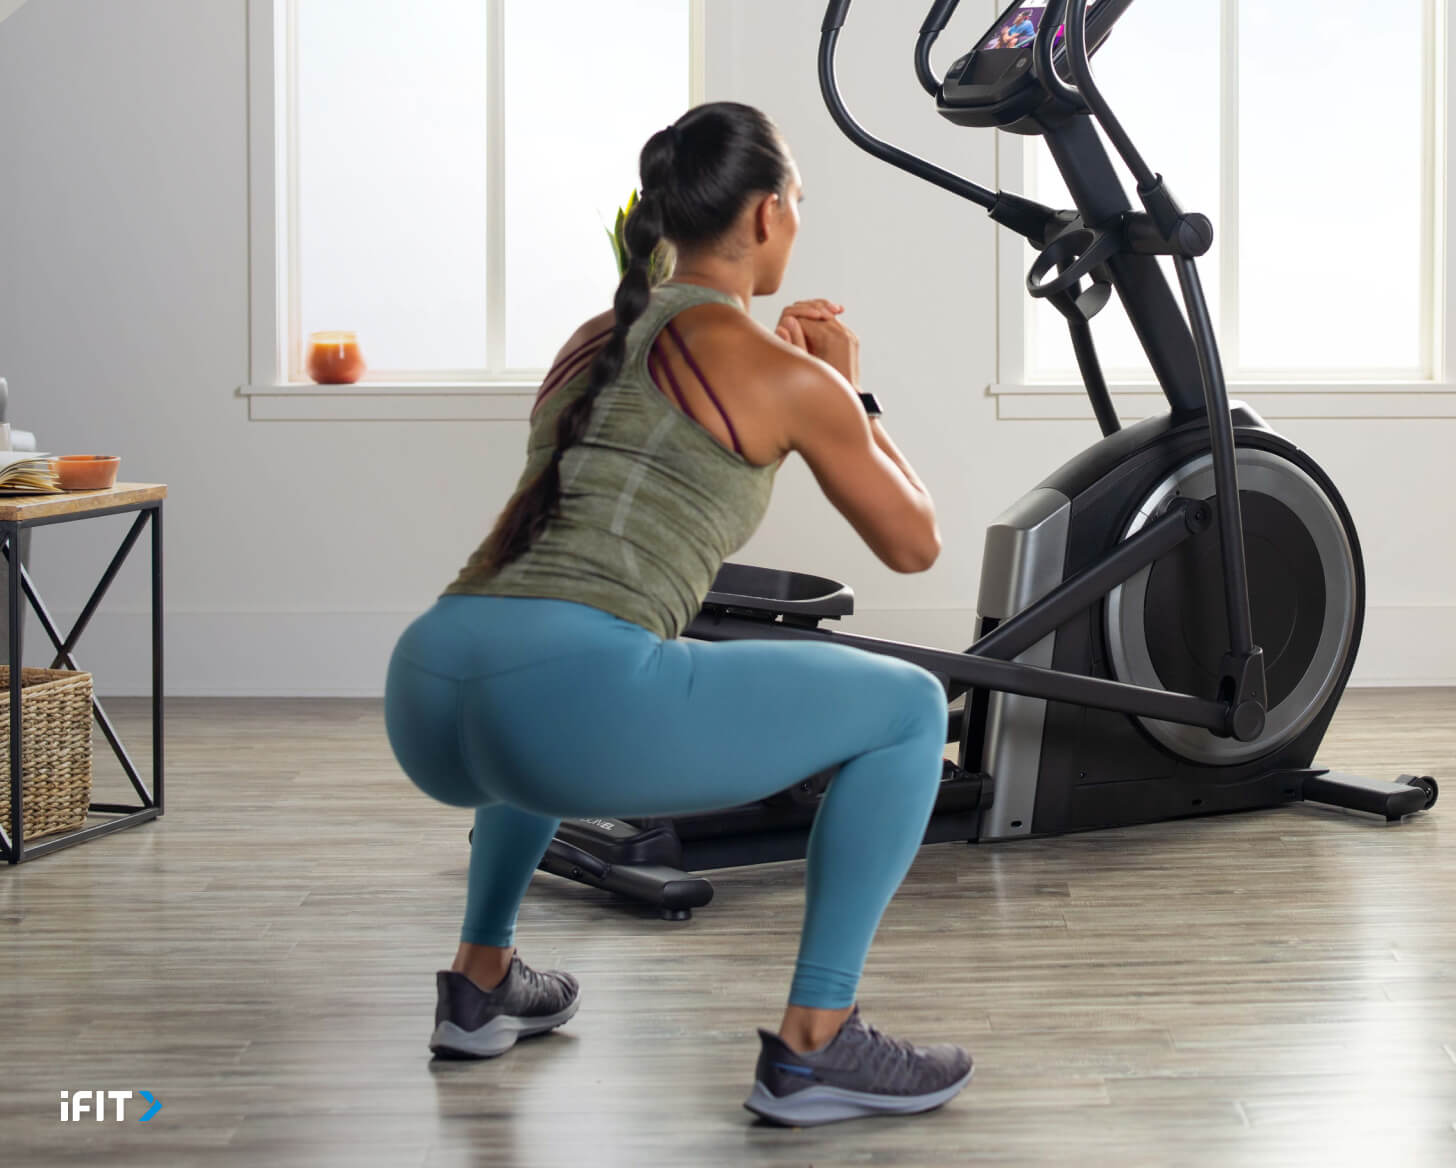 Woman works out with iFIT Tabata exercises